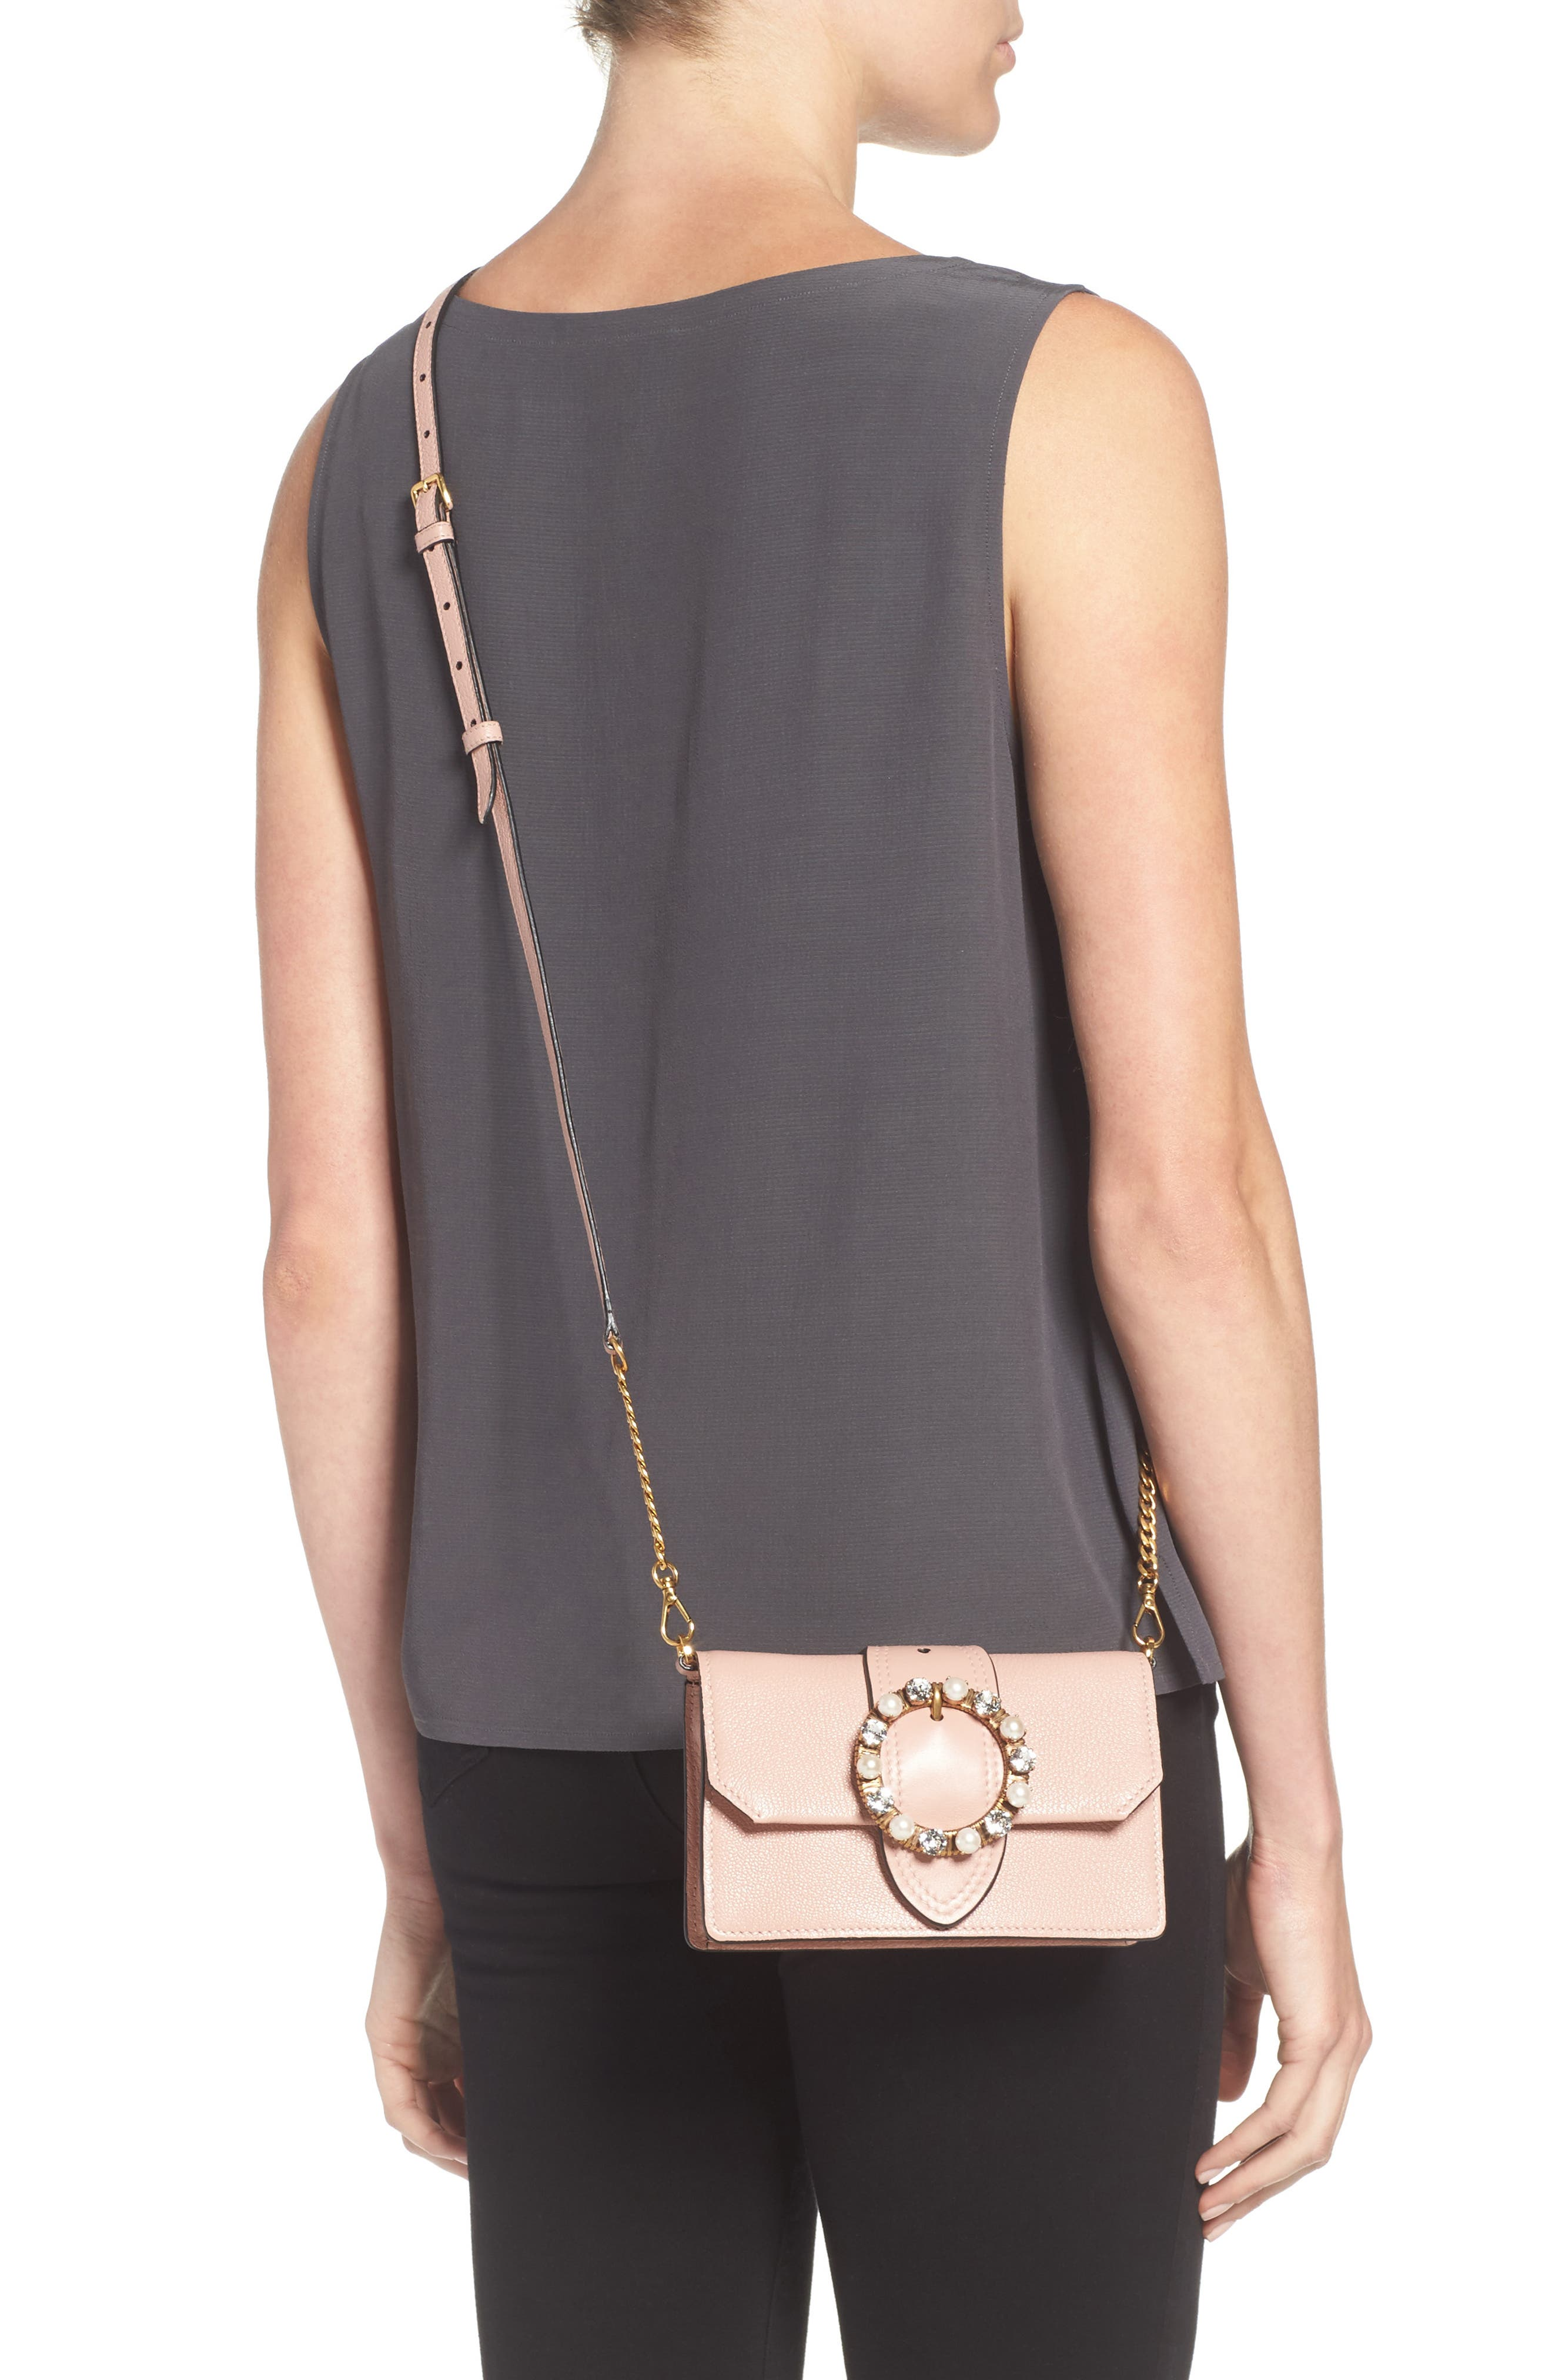 Lady Madras Crystal Embellished Leather Crossbody Bag,                             Alternate thumbnail 2, color,                             Orchidea